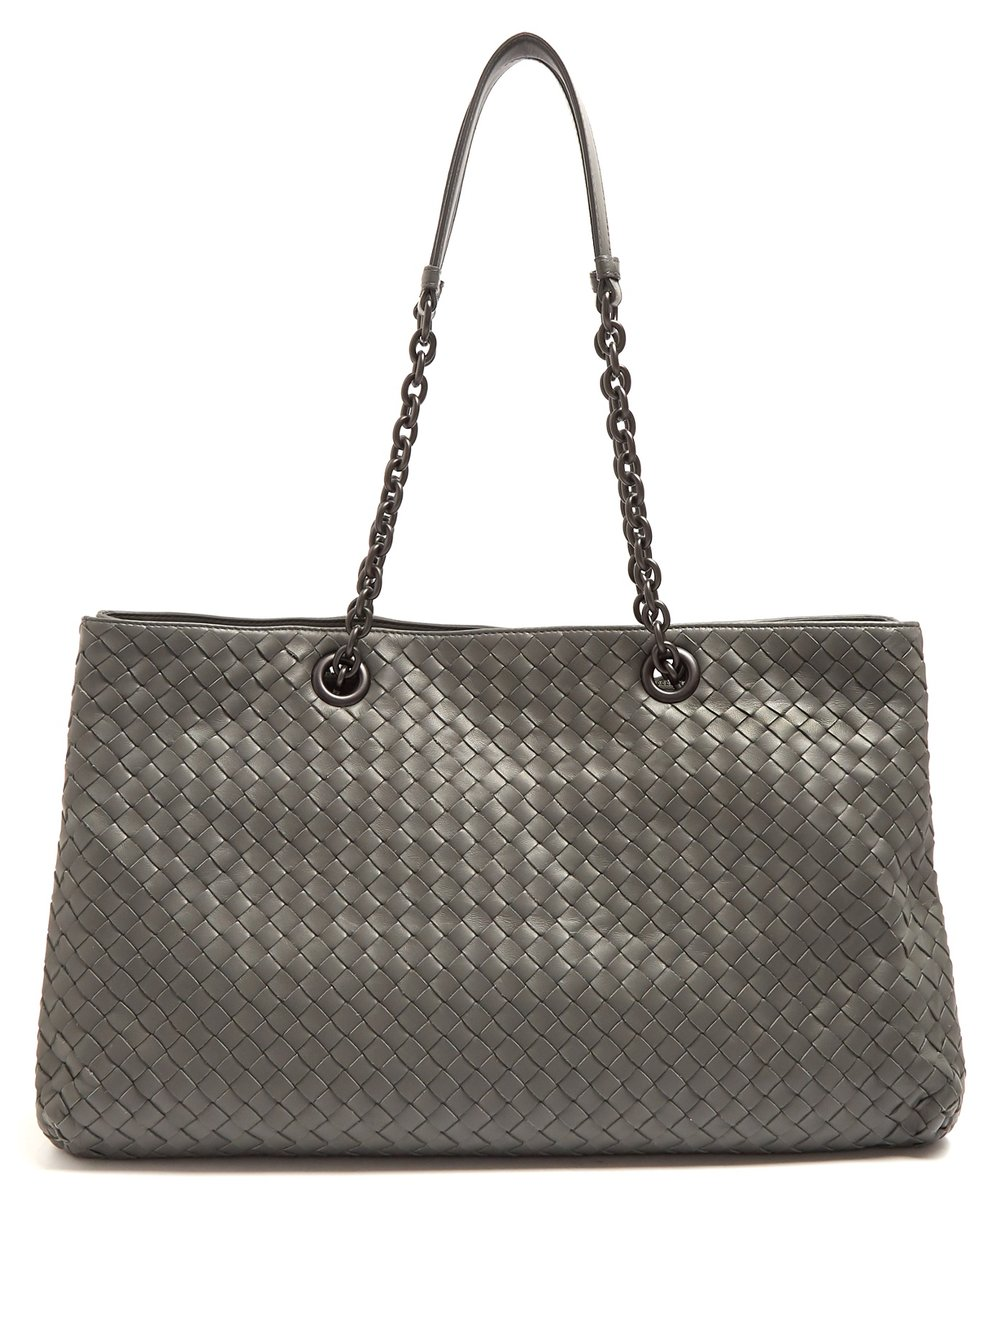 Medium Tote   Grey